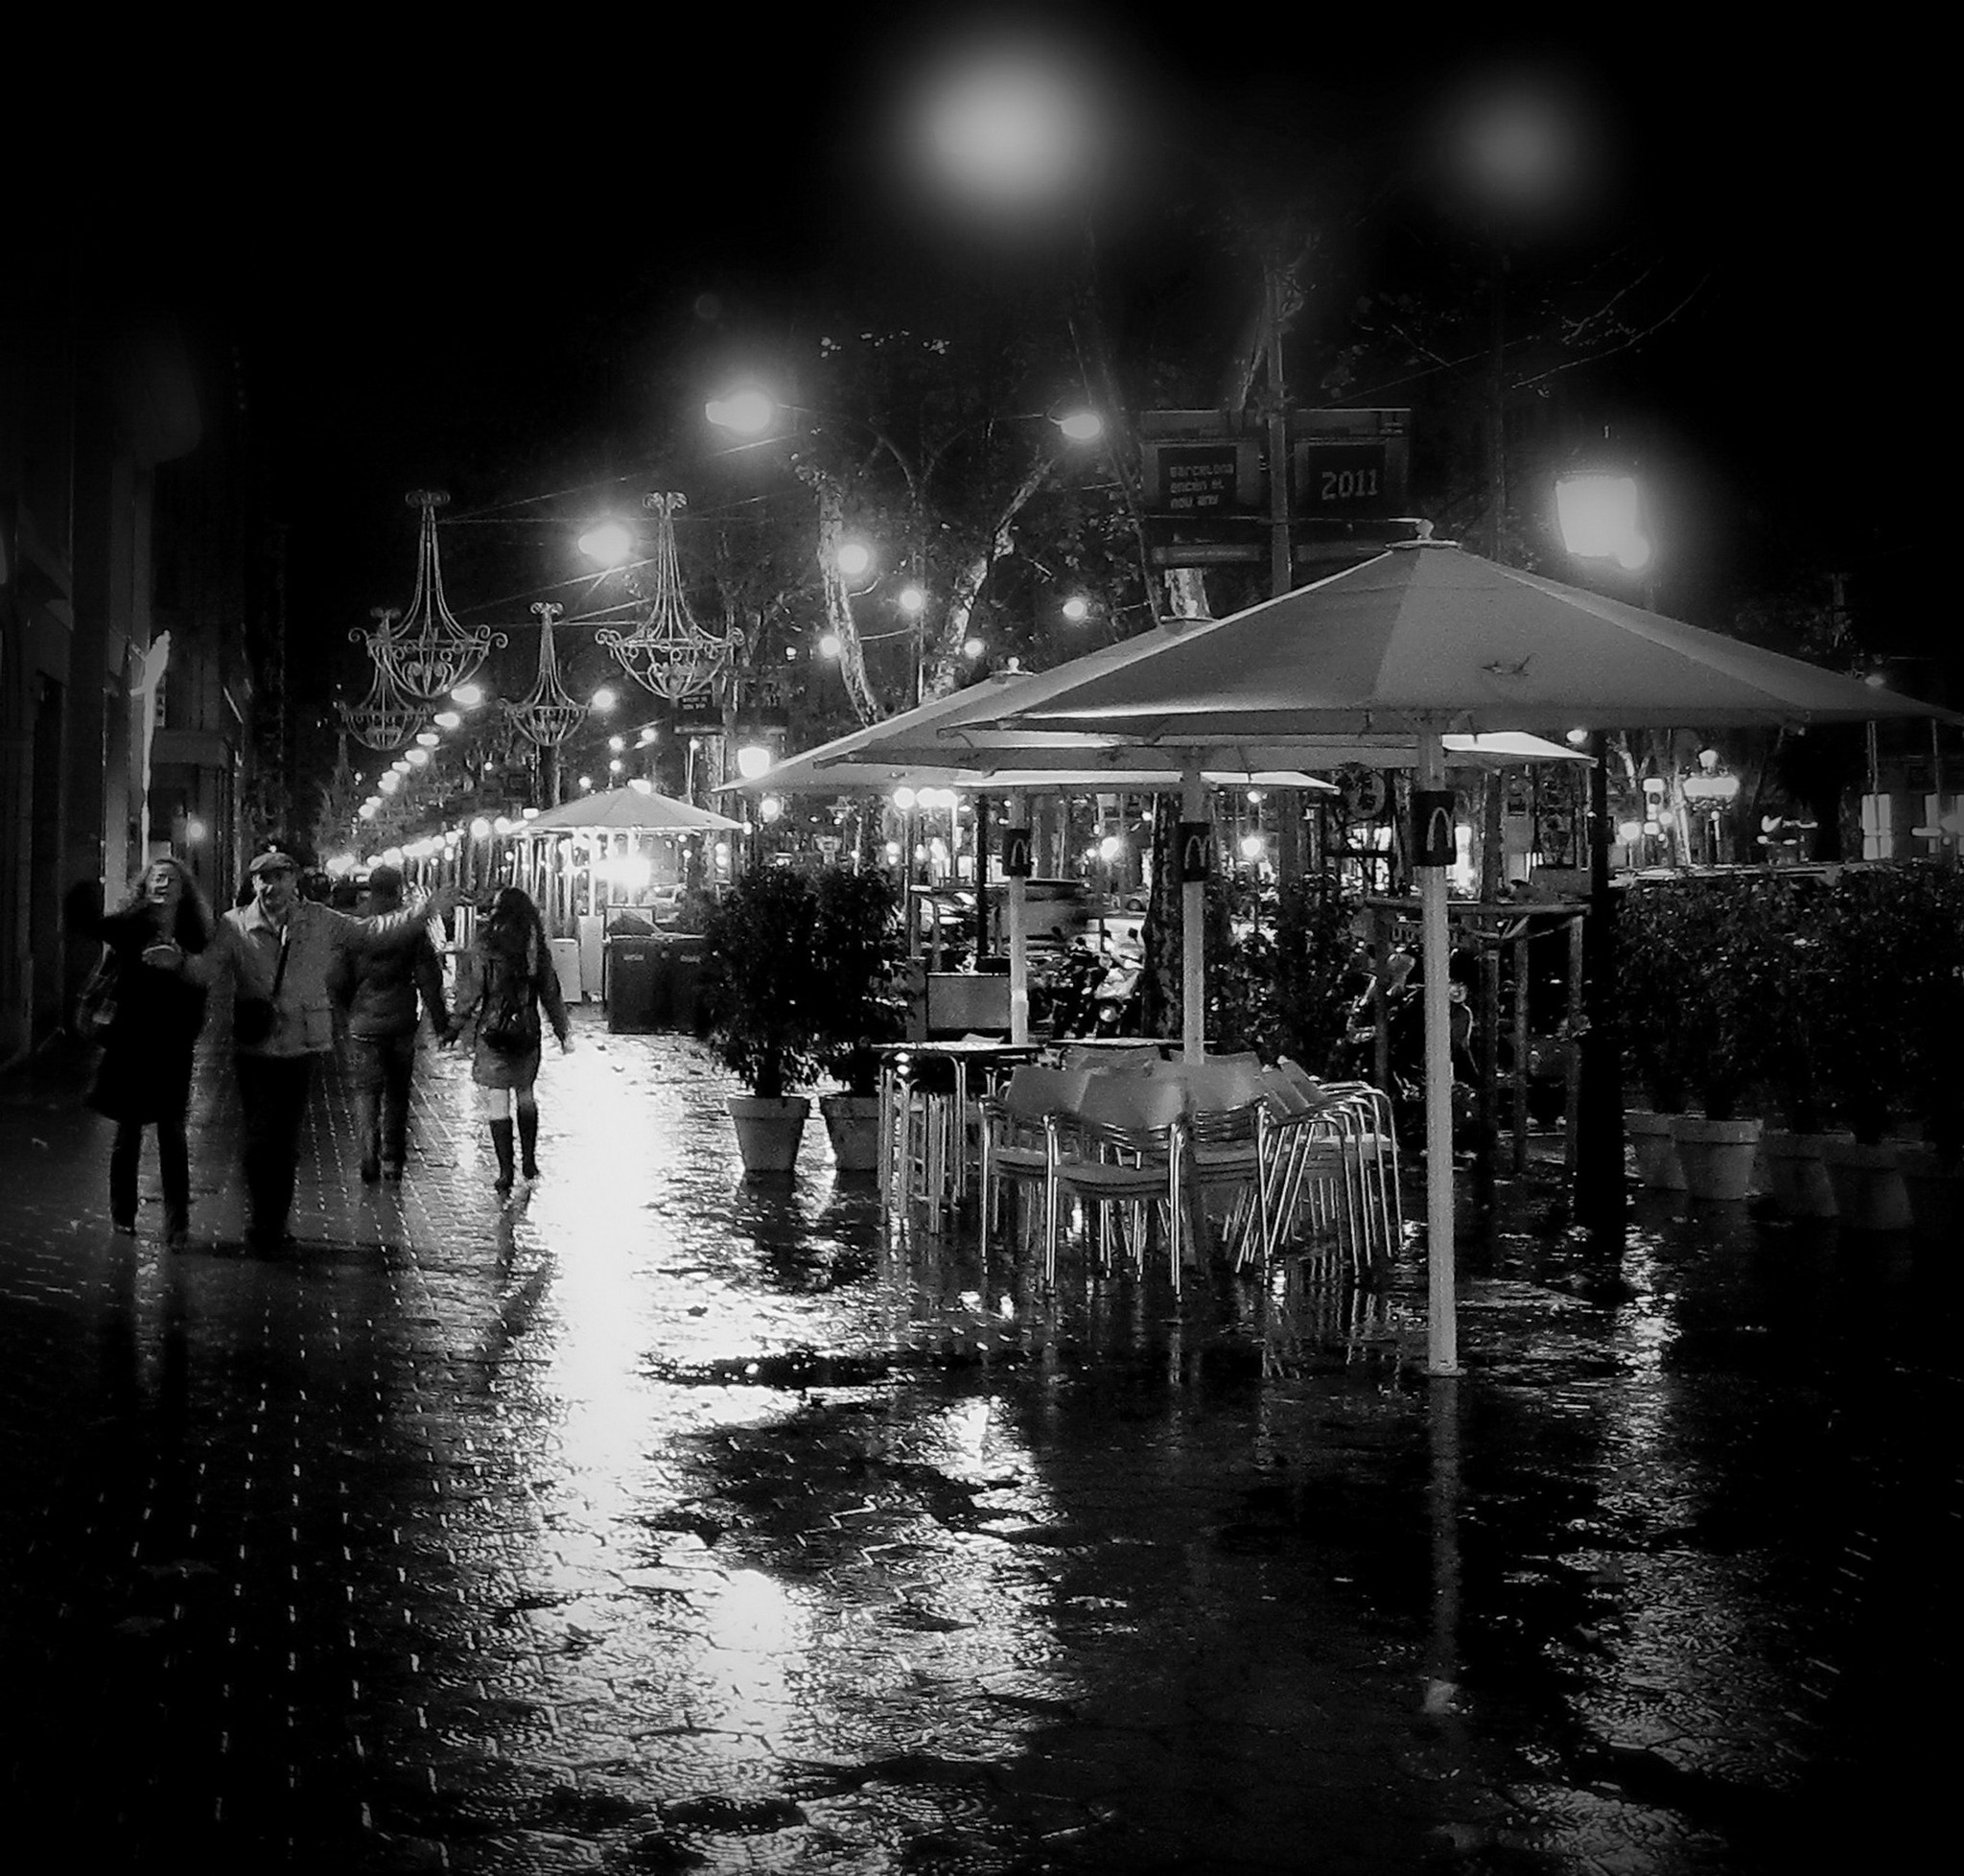 Photograph Noche lluviosa en Barcelona by Dragan Djuric on 500px